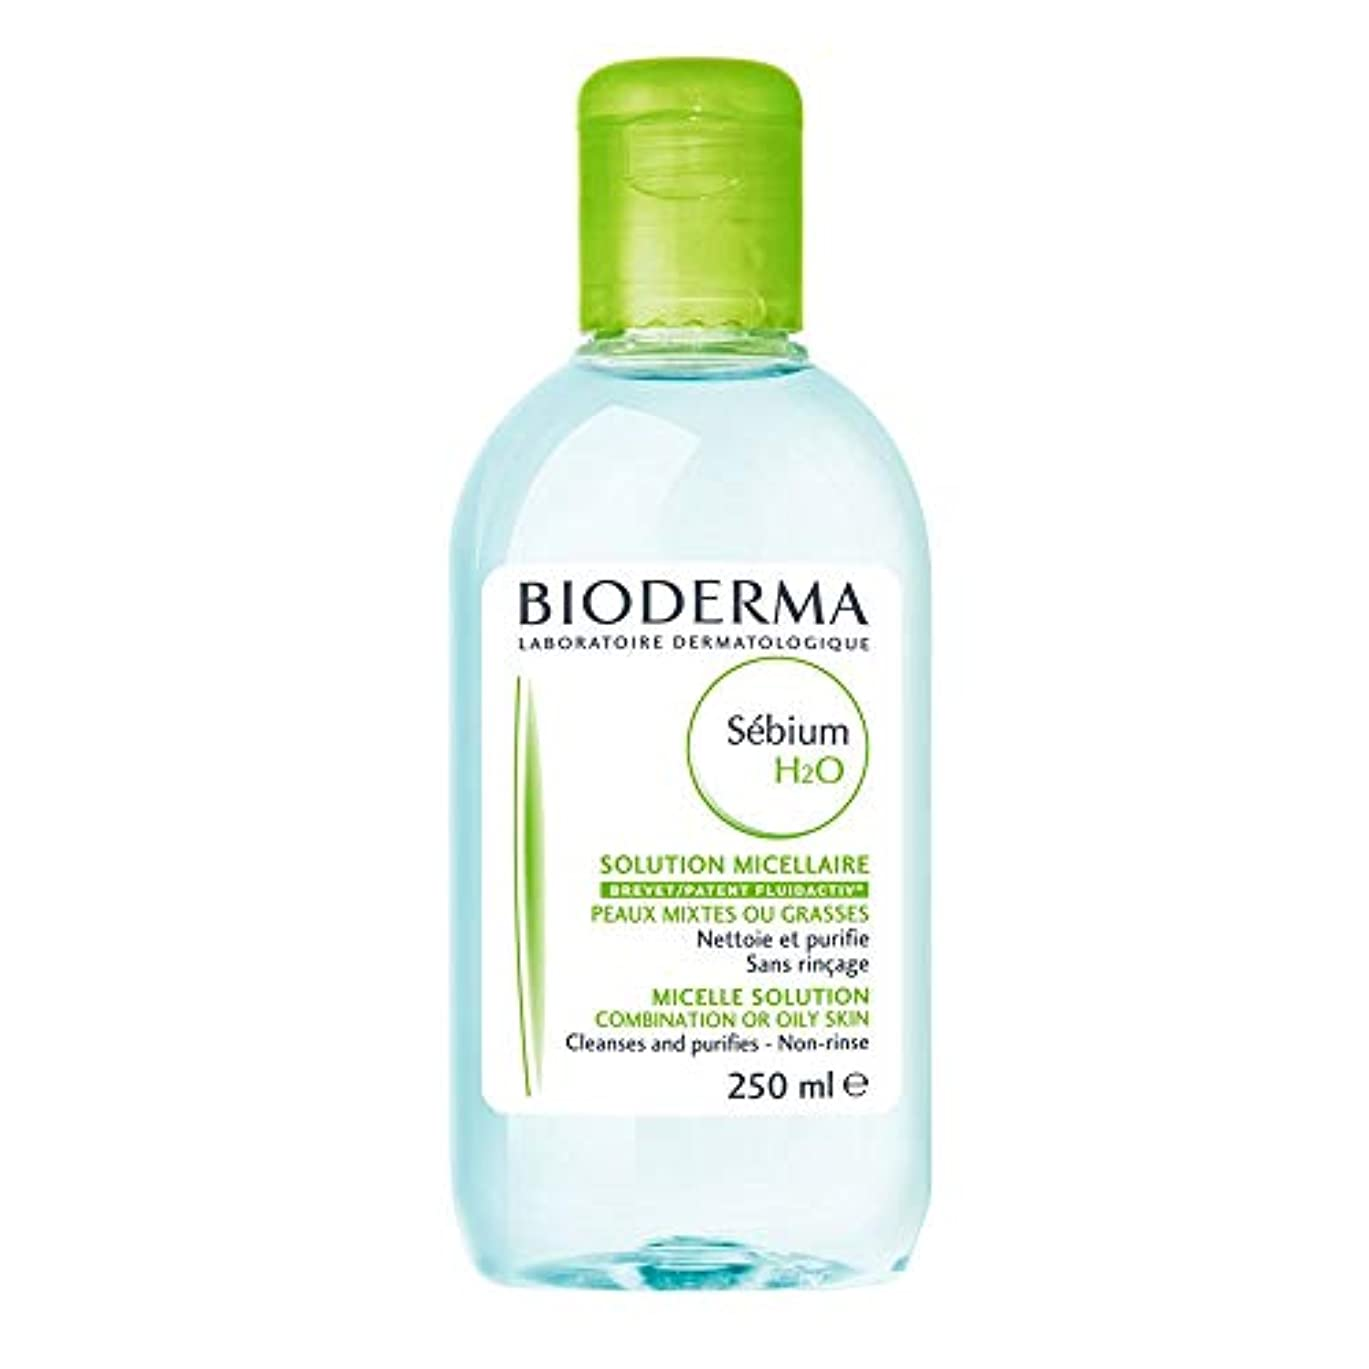 撤退ただ補体Bioderma - Sebium H2O Purifying Cleansing Micelle Solution (250 ml) [並行輸入品]